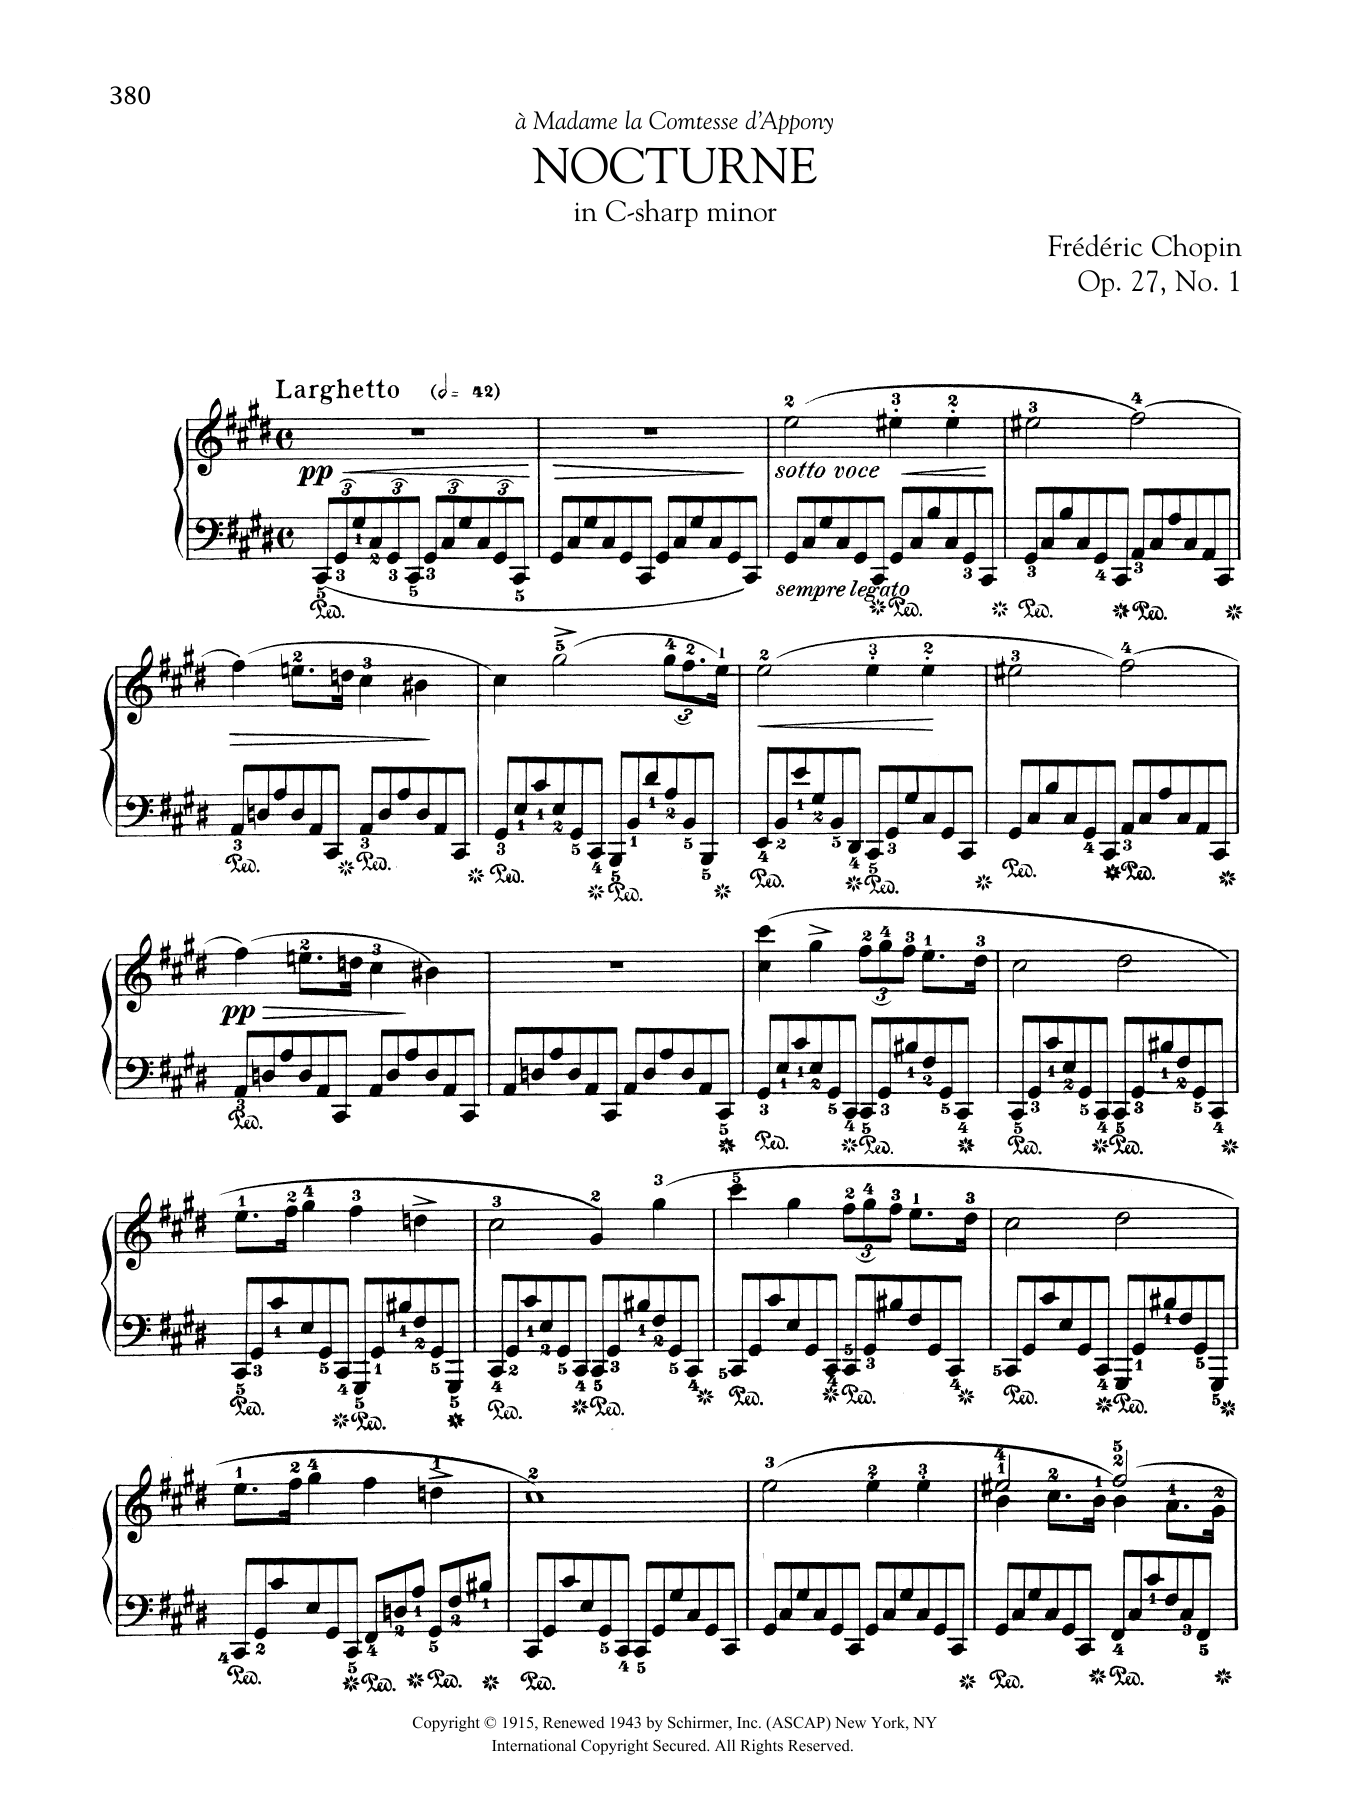 Nocturne in C-sharp minor, Op. 27, No. 1 Sheet Music